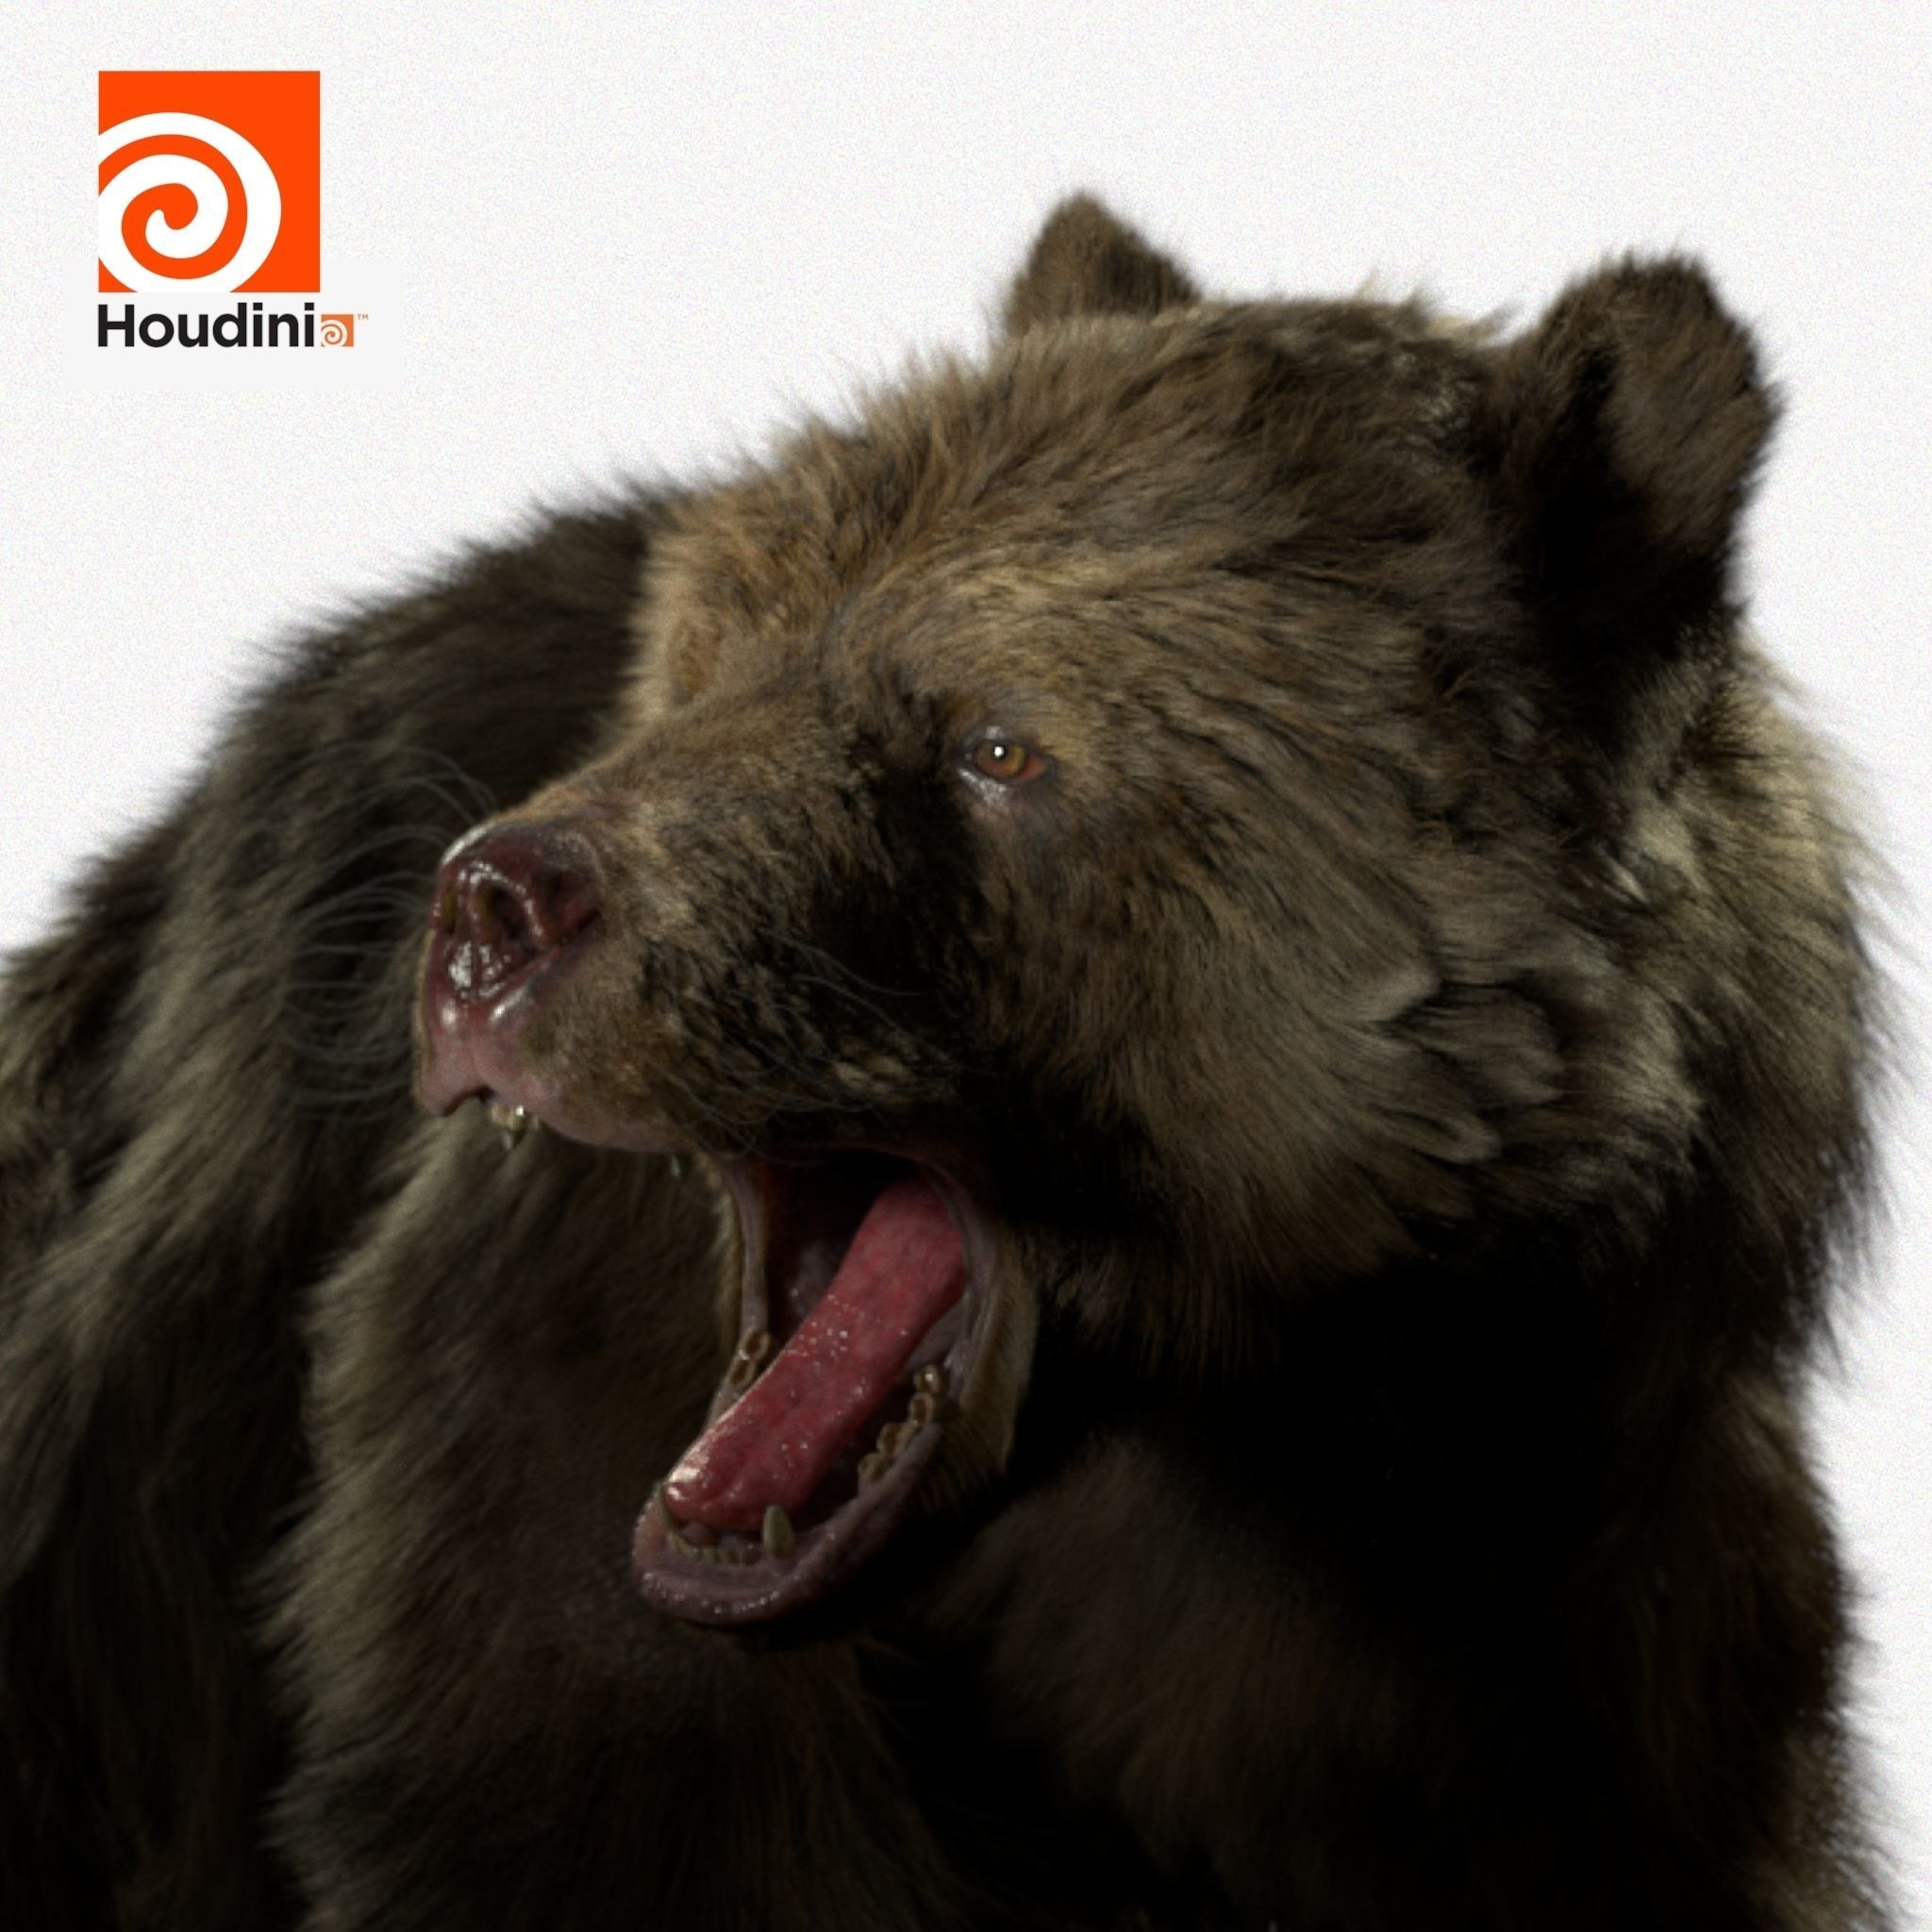 grizzly bear Model Houdini